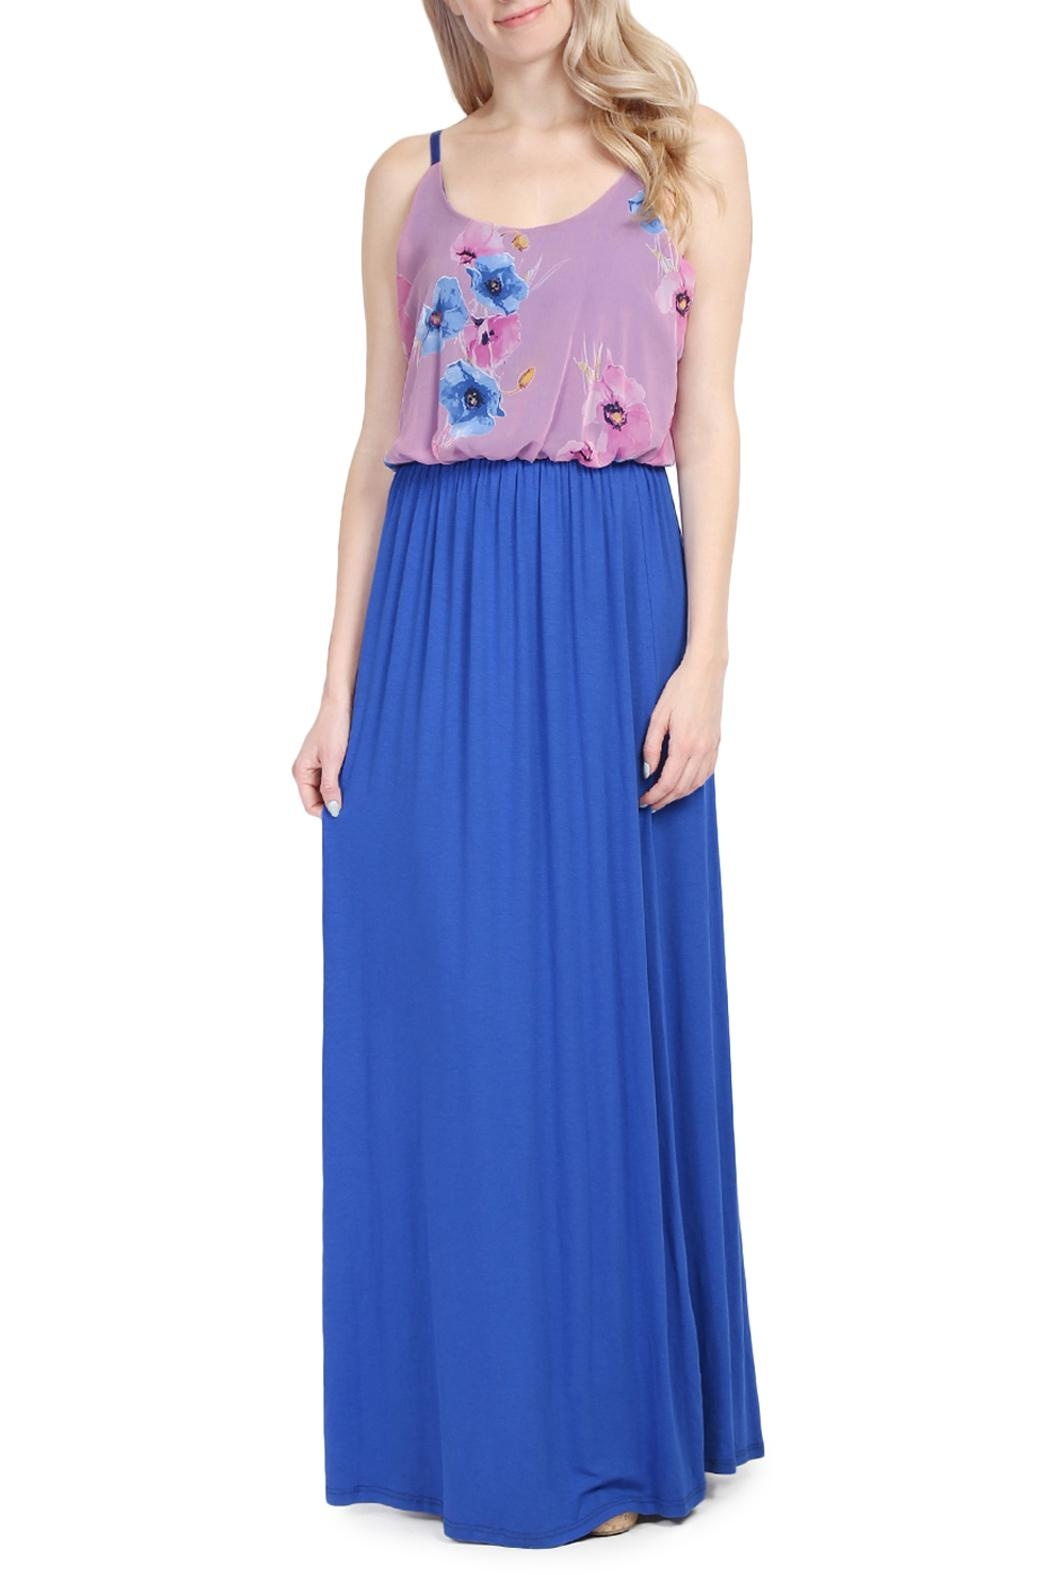 Riah Fashion Floral Sleeveless Maxi Dress - Main Image